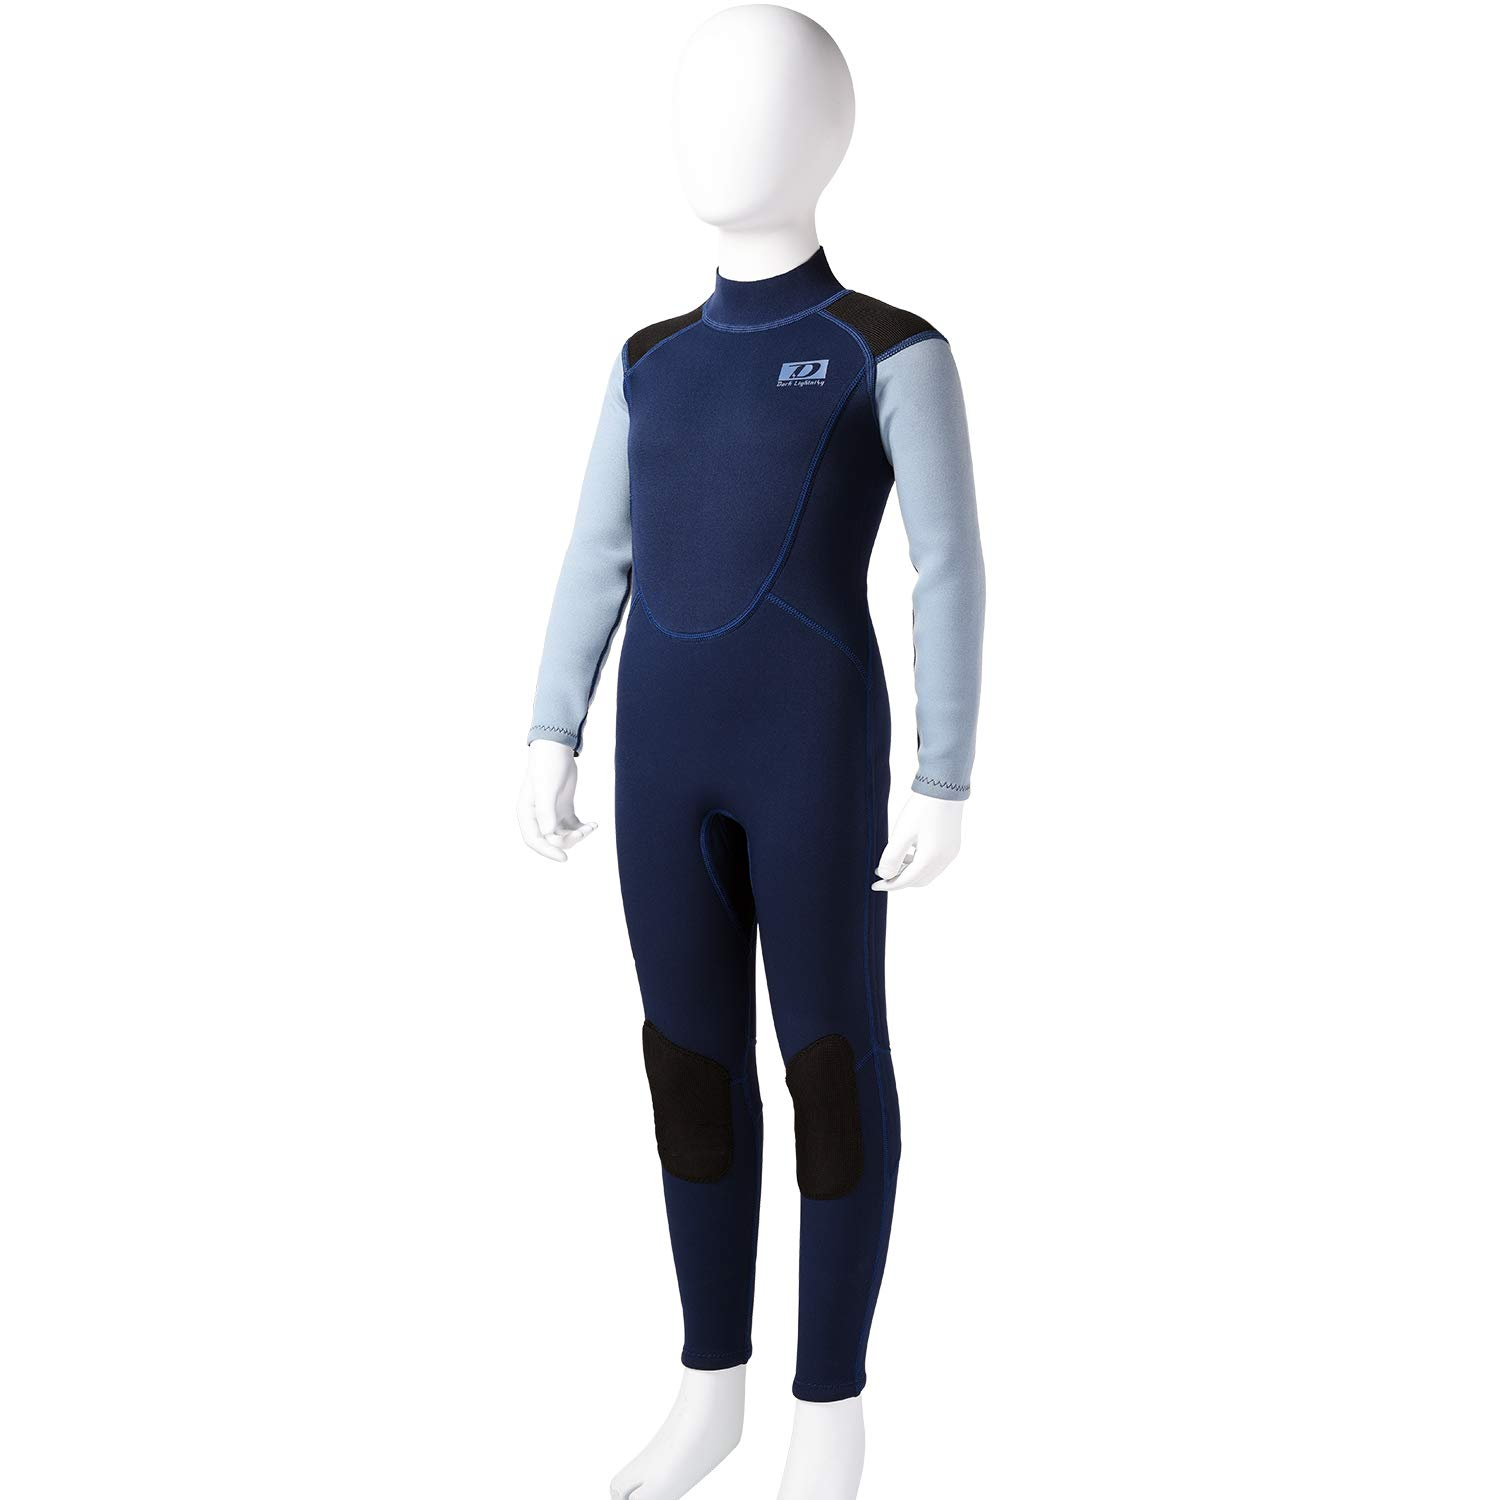 dark lightning Youth 3/2mm Wetsuit, 2019 Neoprene Thermal Swimsuit, Boy's One Piece Wet Suits for Professionally Scuba Diving, Full Body Teenage Suit, Size 12 by Dark Lightning